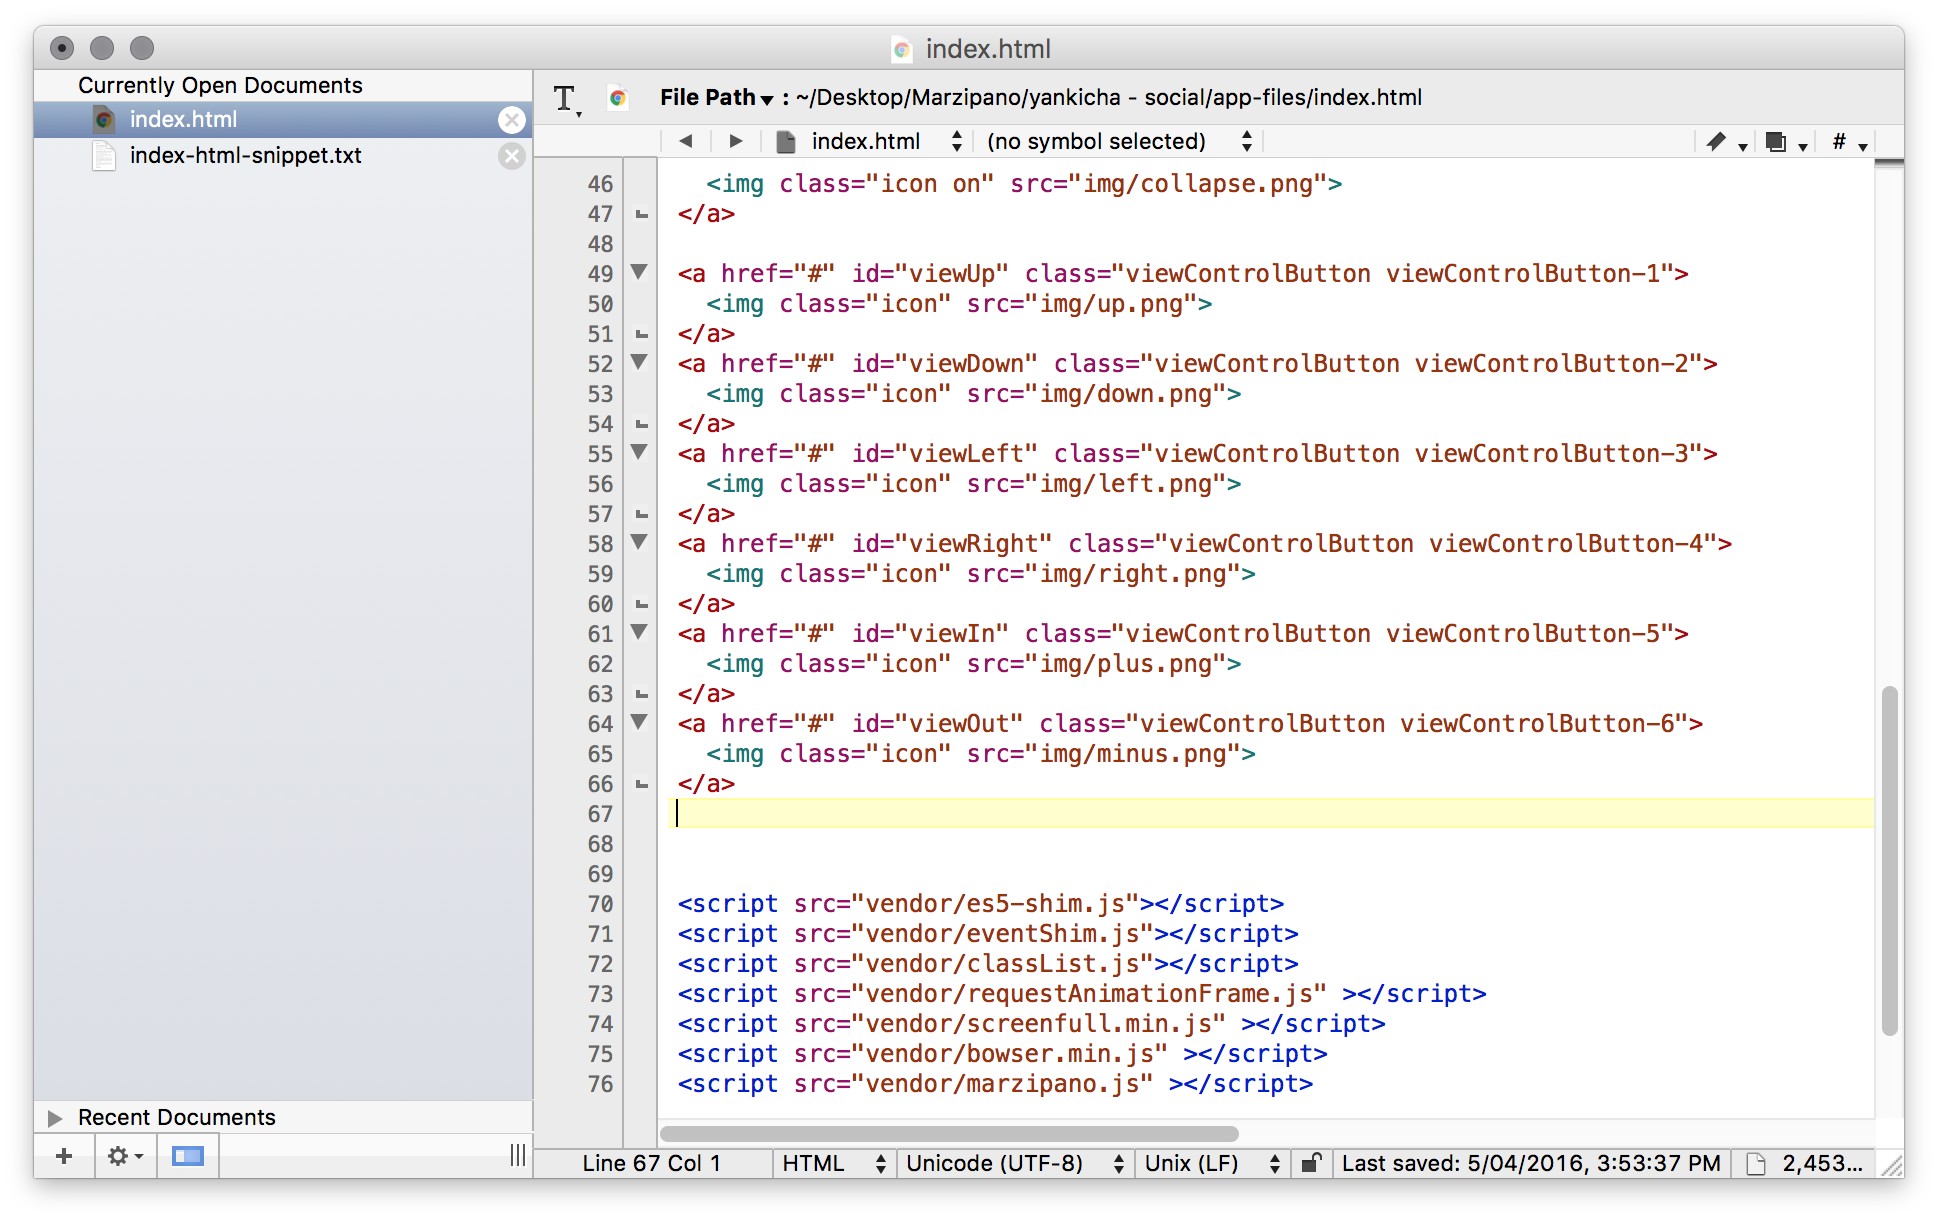 Insertion point for the index-html-snippet